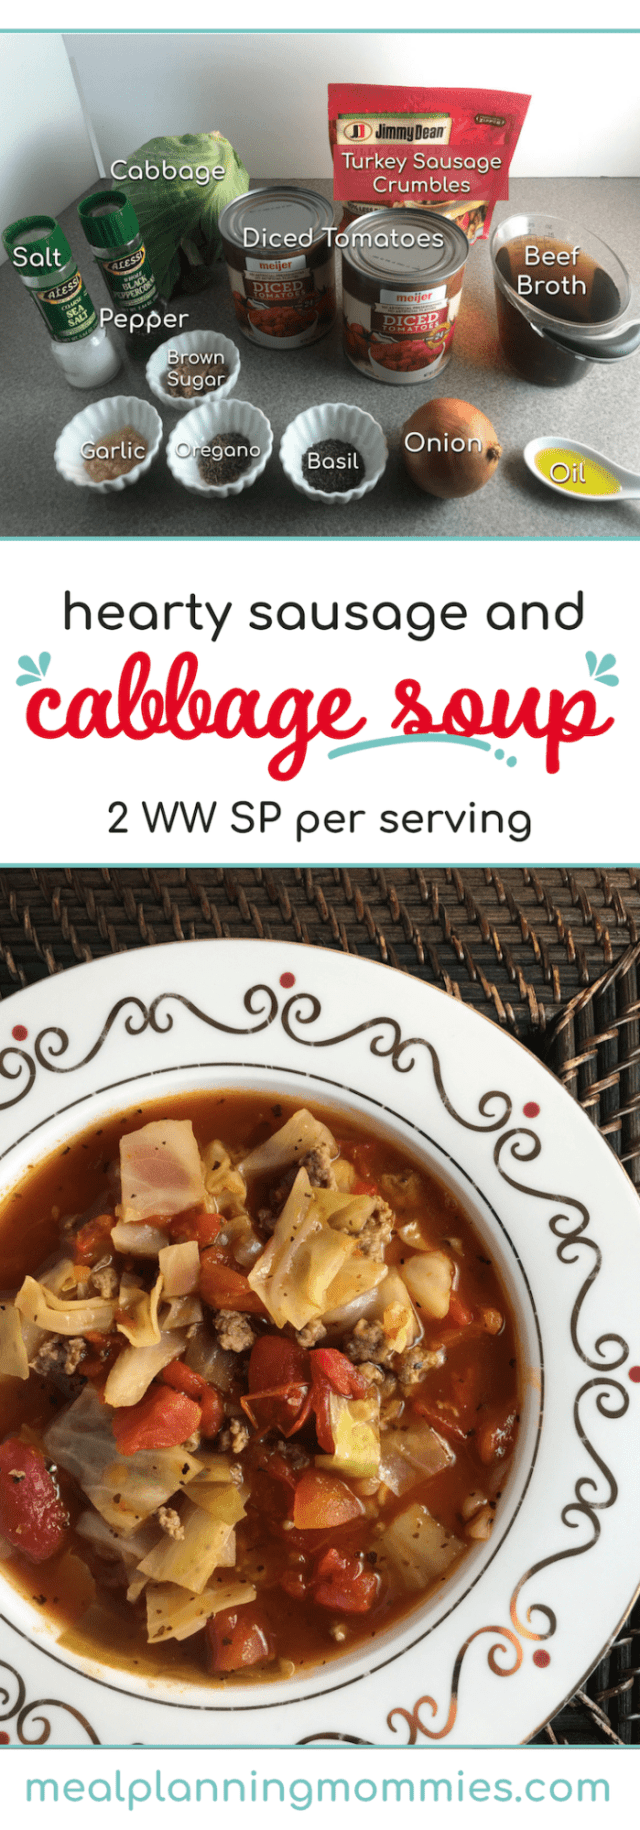 Hearty sausage and cabbage soup on Meal Planning Mommies - Just 2 WW FreeStyle SP per serving!